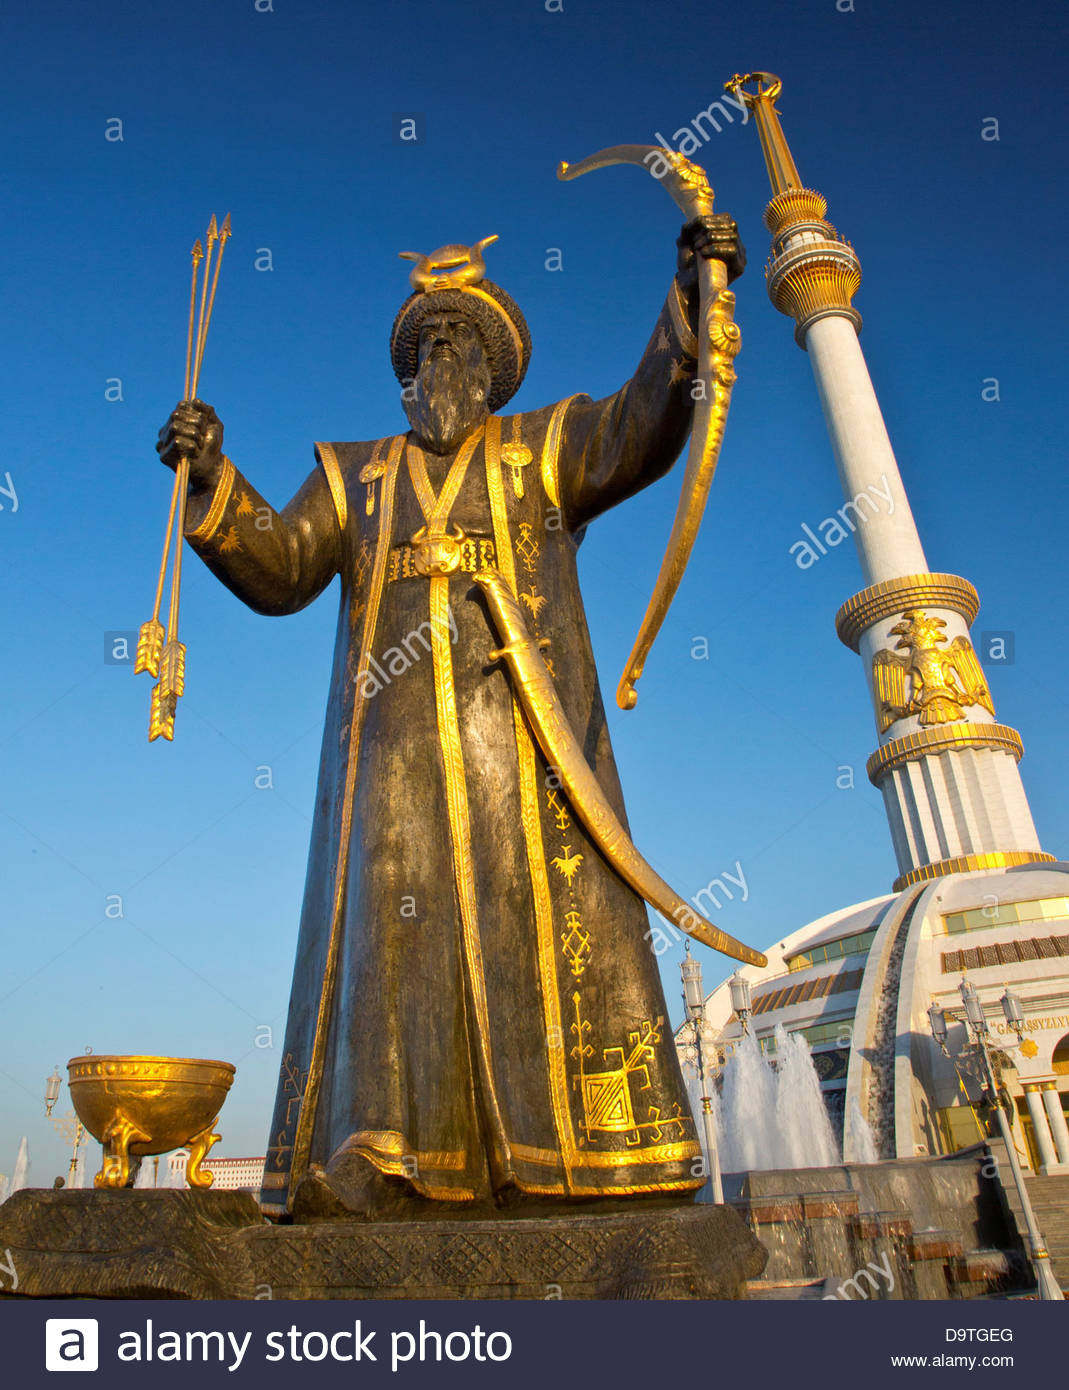 Monument to the Independence of Turkmenistan Ashgabat, Turkmenistan, Ashgabat, Hero statue at Ashgabat independence ...